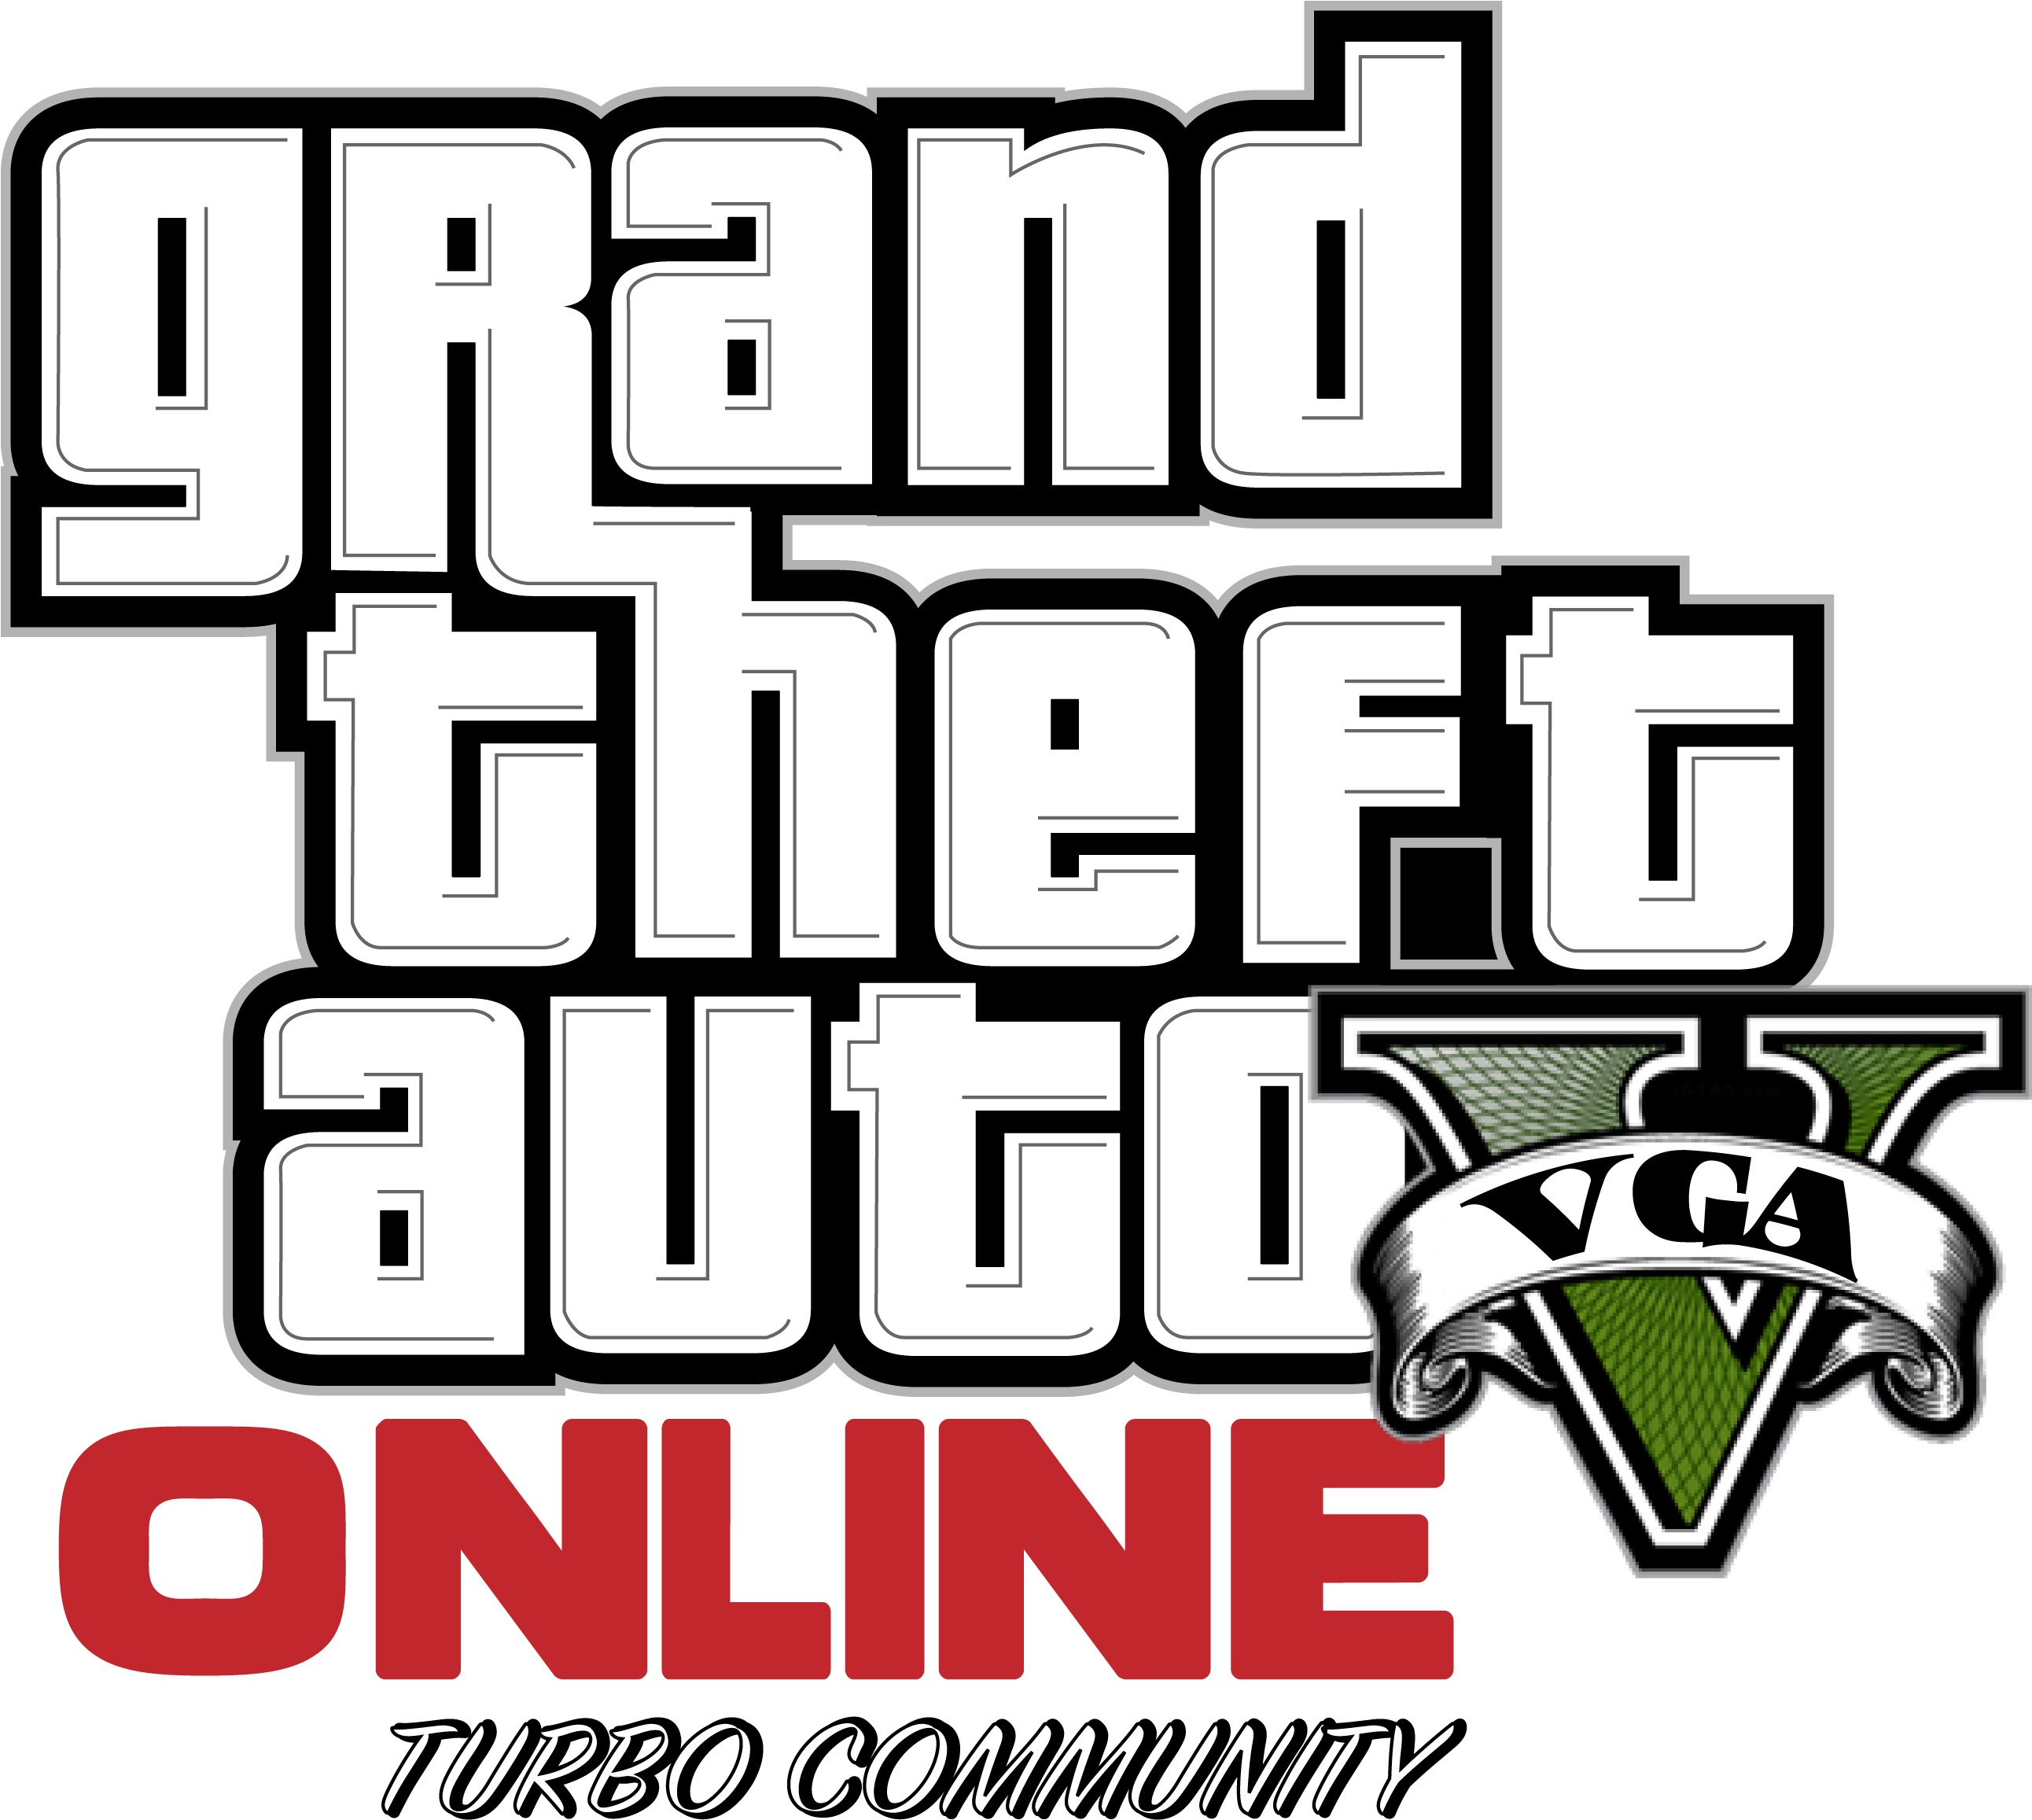 Download Hd Gta 5 Picture Grand Theft Auto V Online Logo